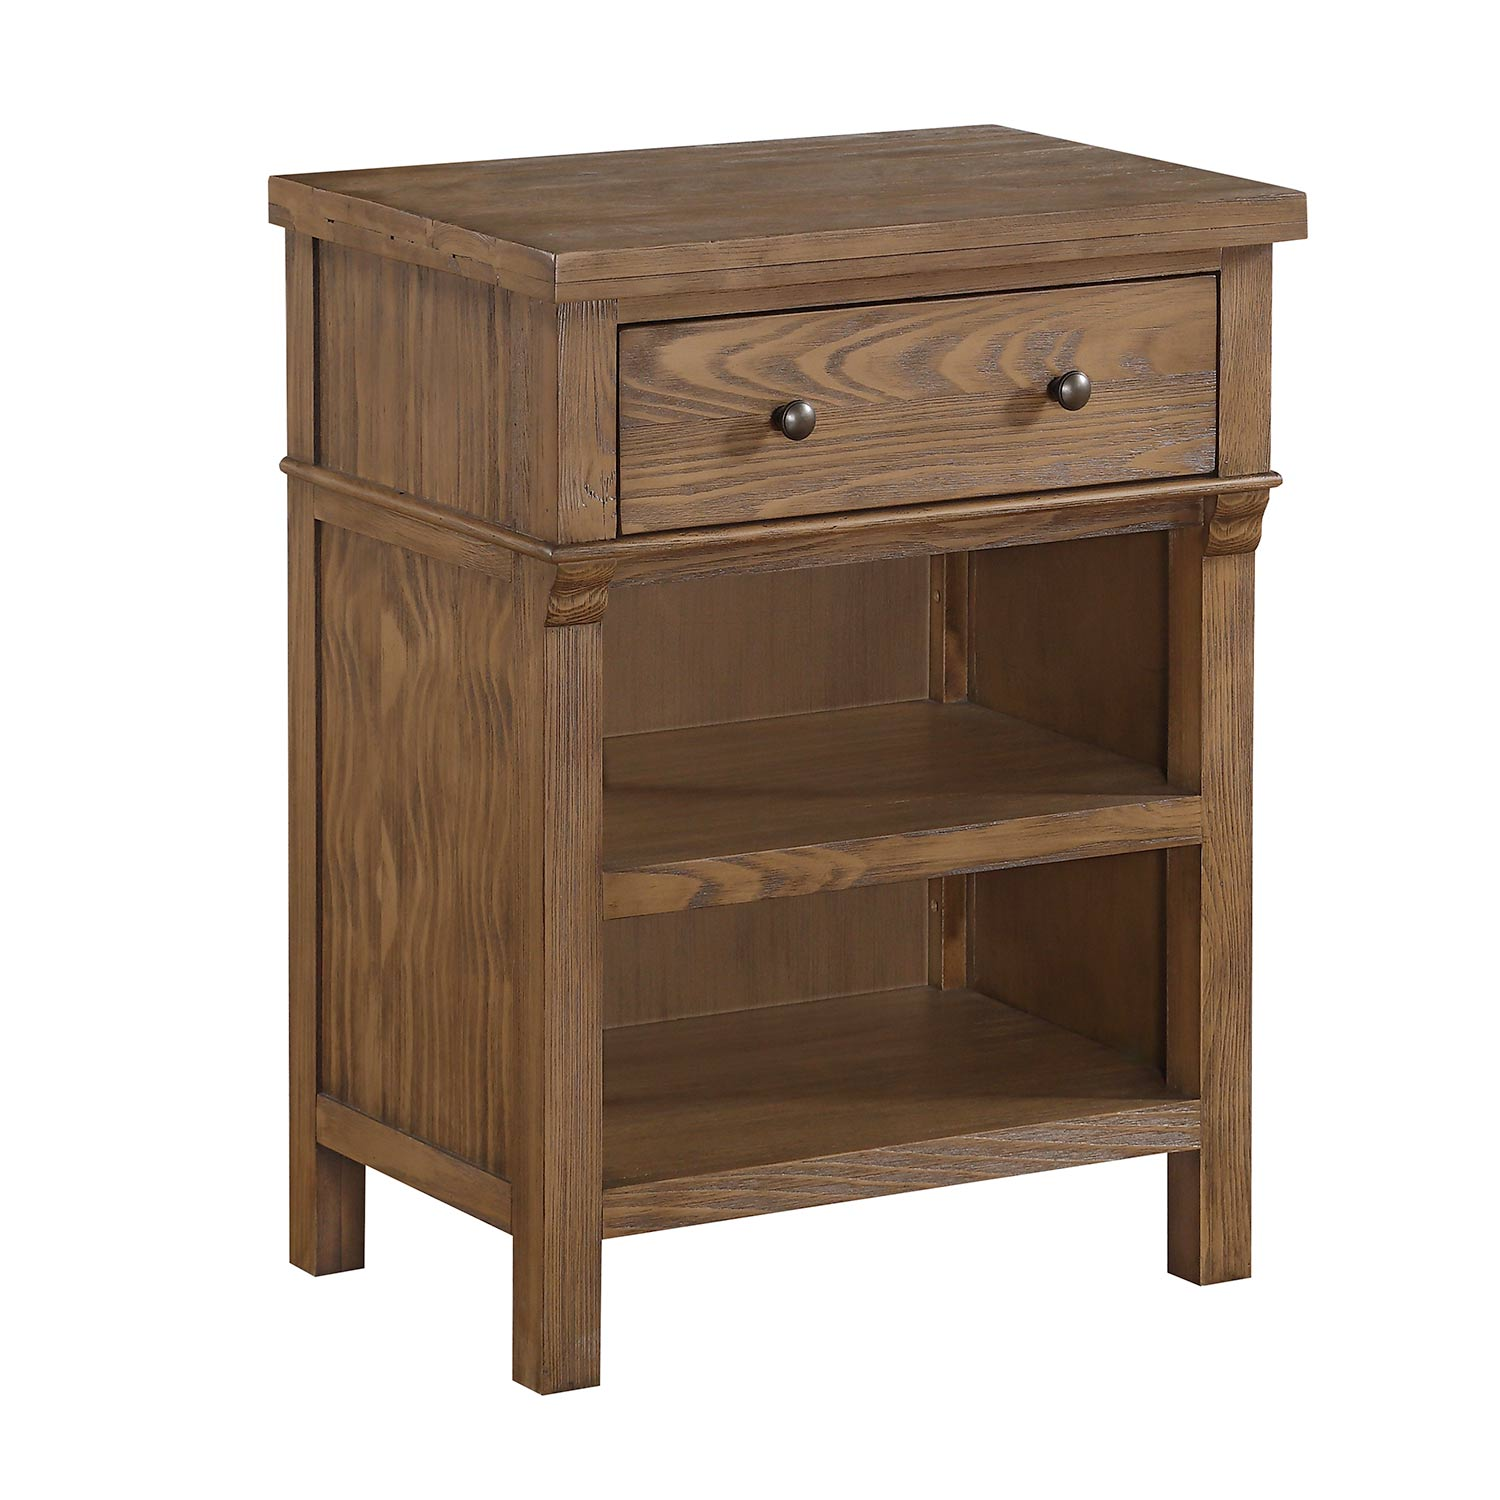 Acme Inverness Nightstand - Reclaimed Oak